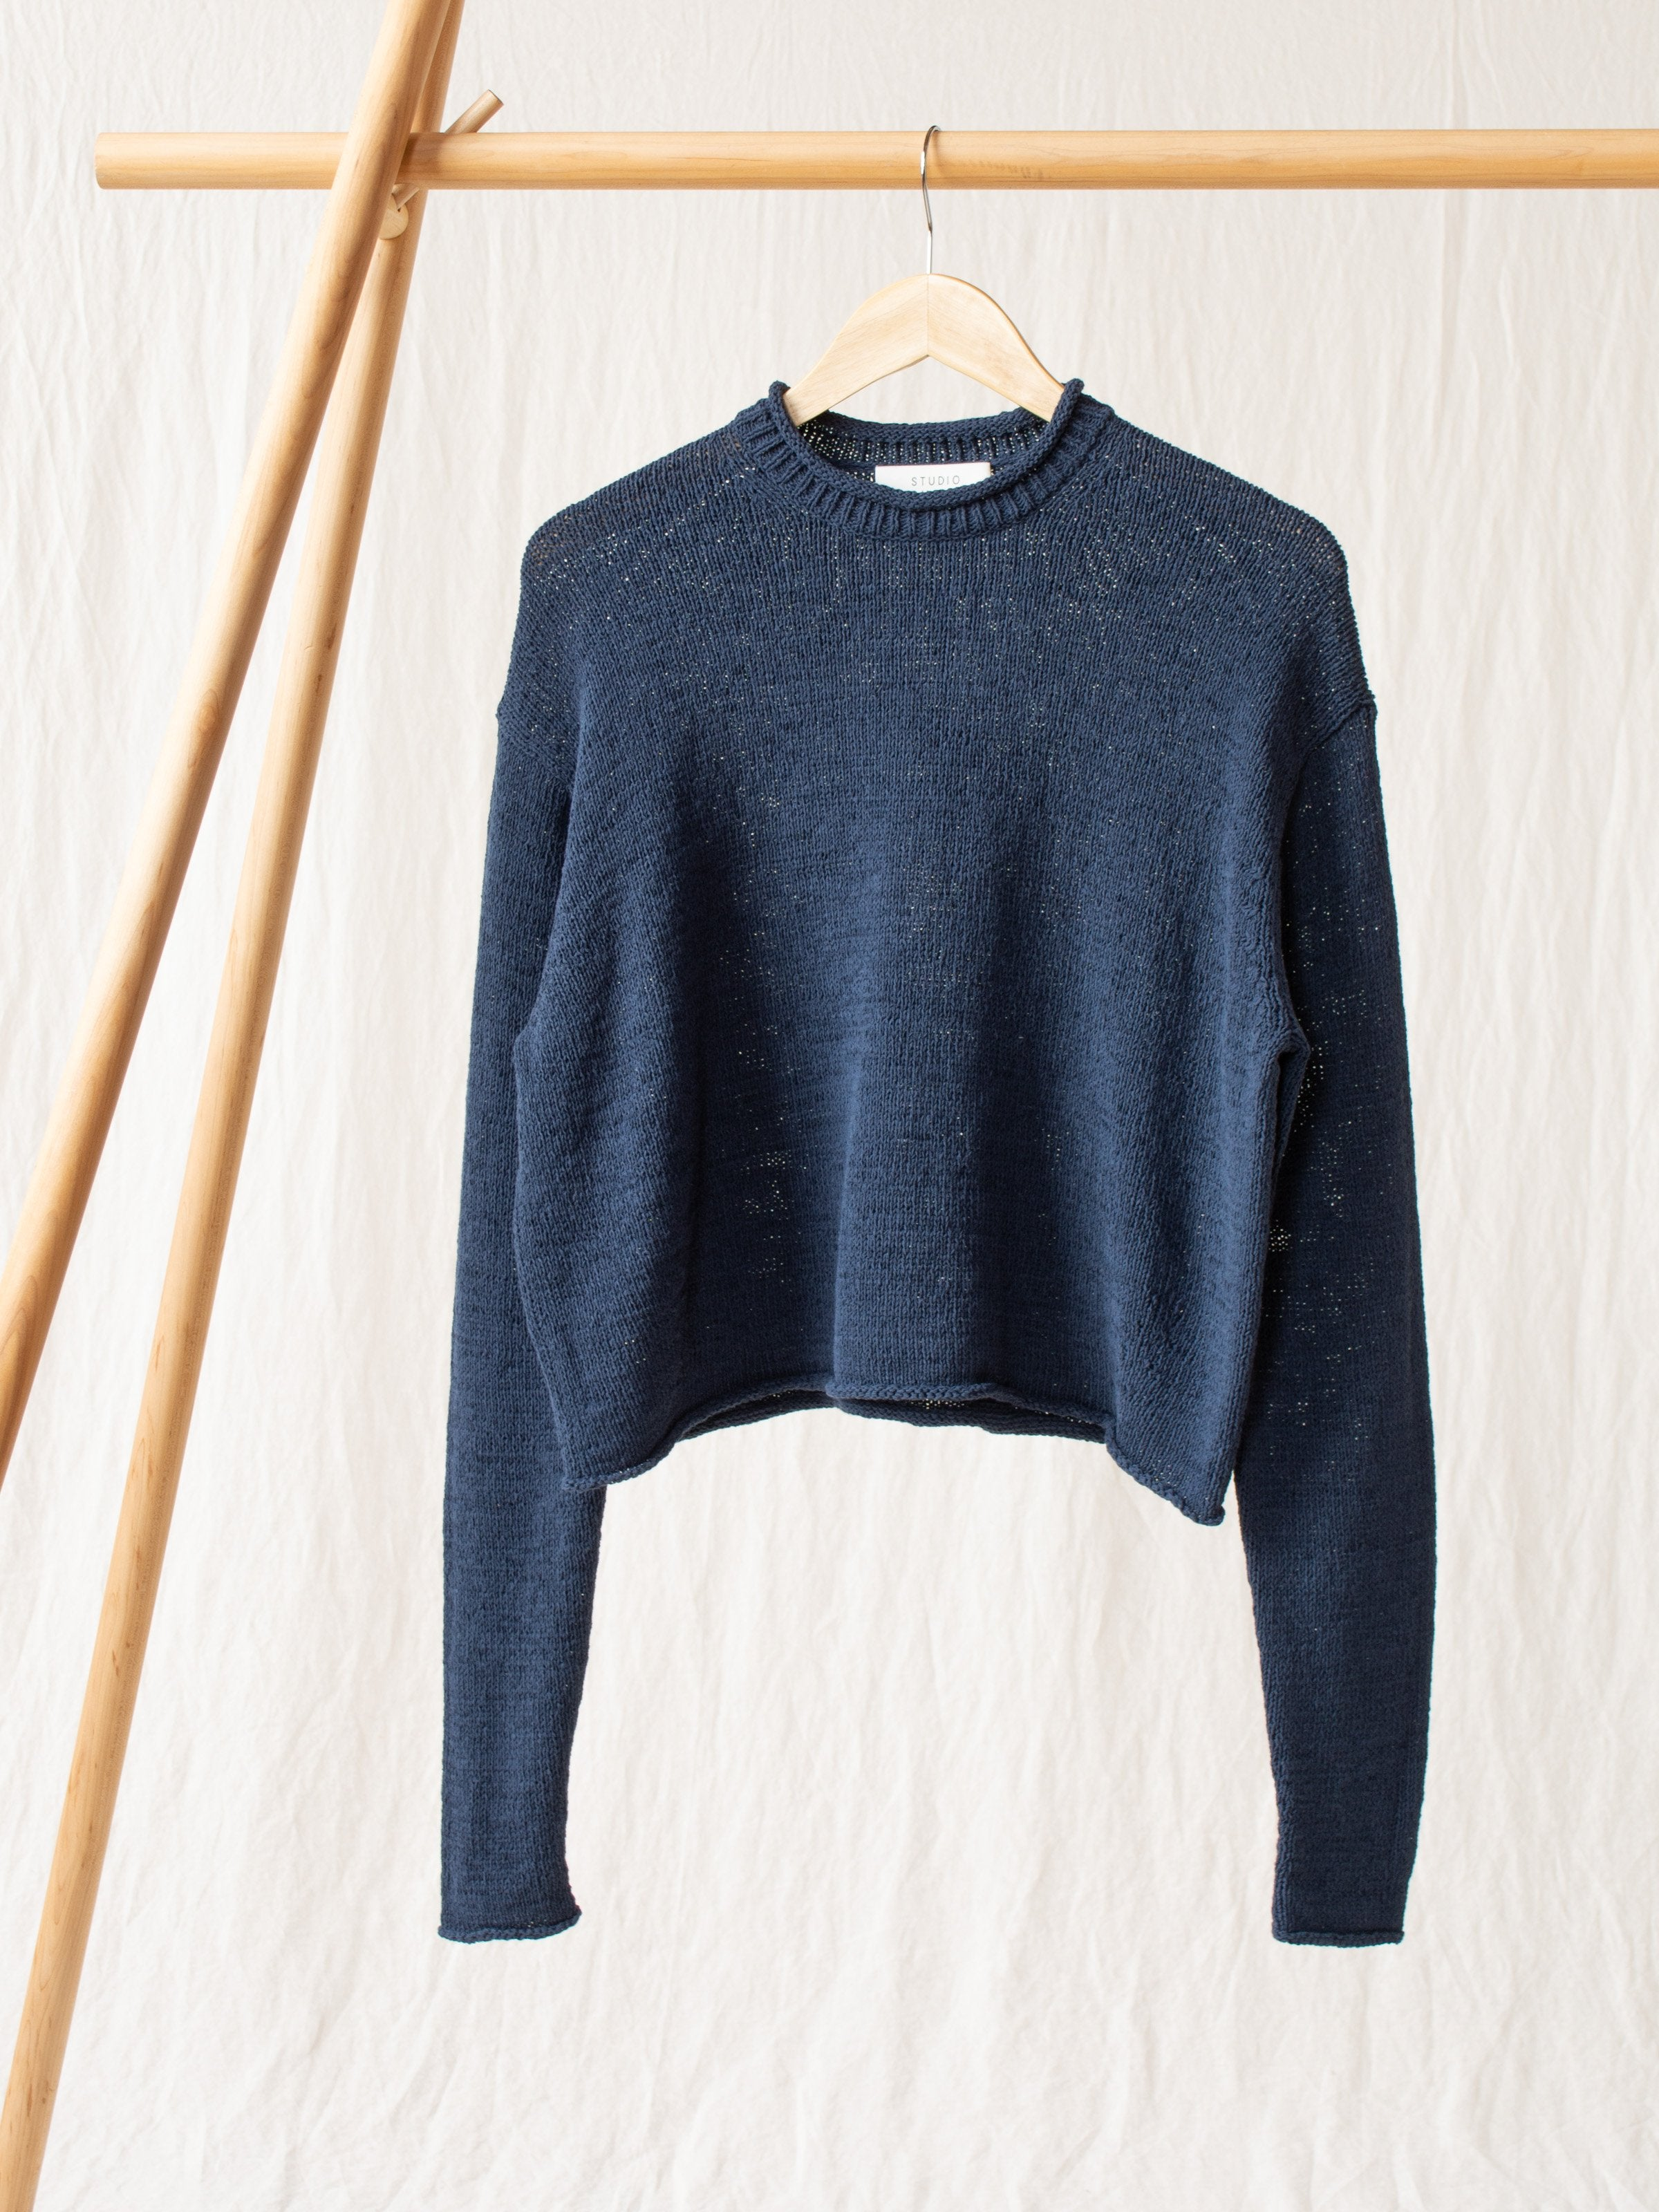 Namu Shop - Ichi Antiquites Pocket Sweater